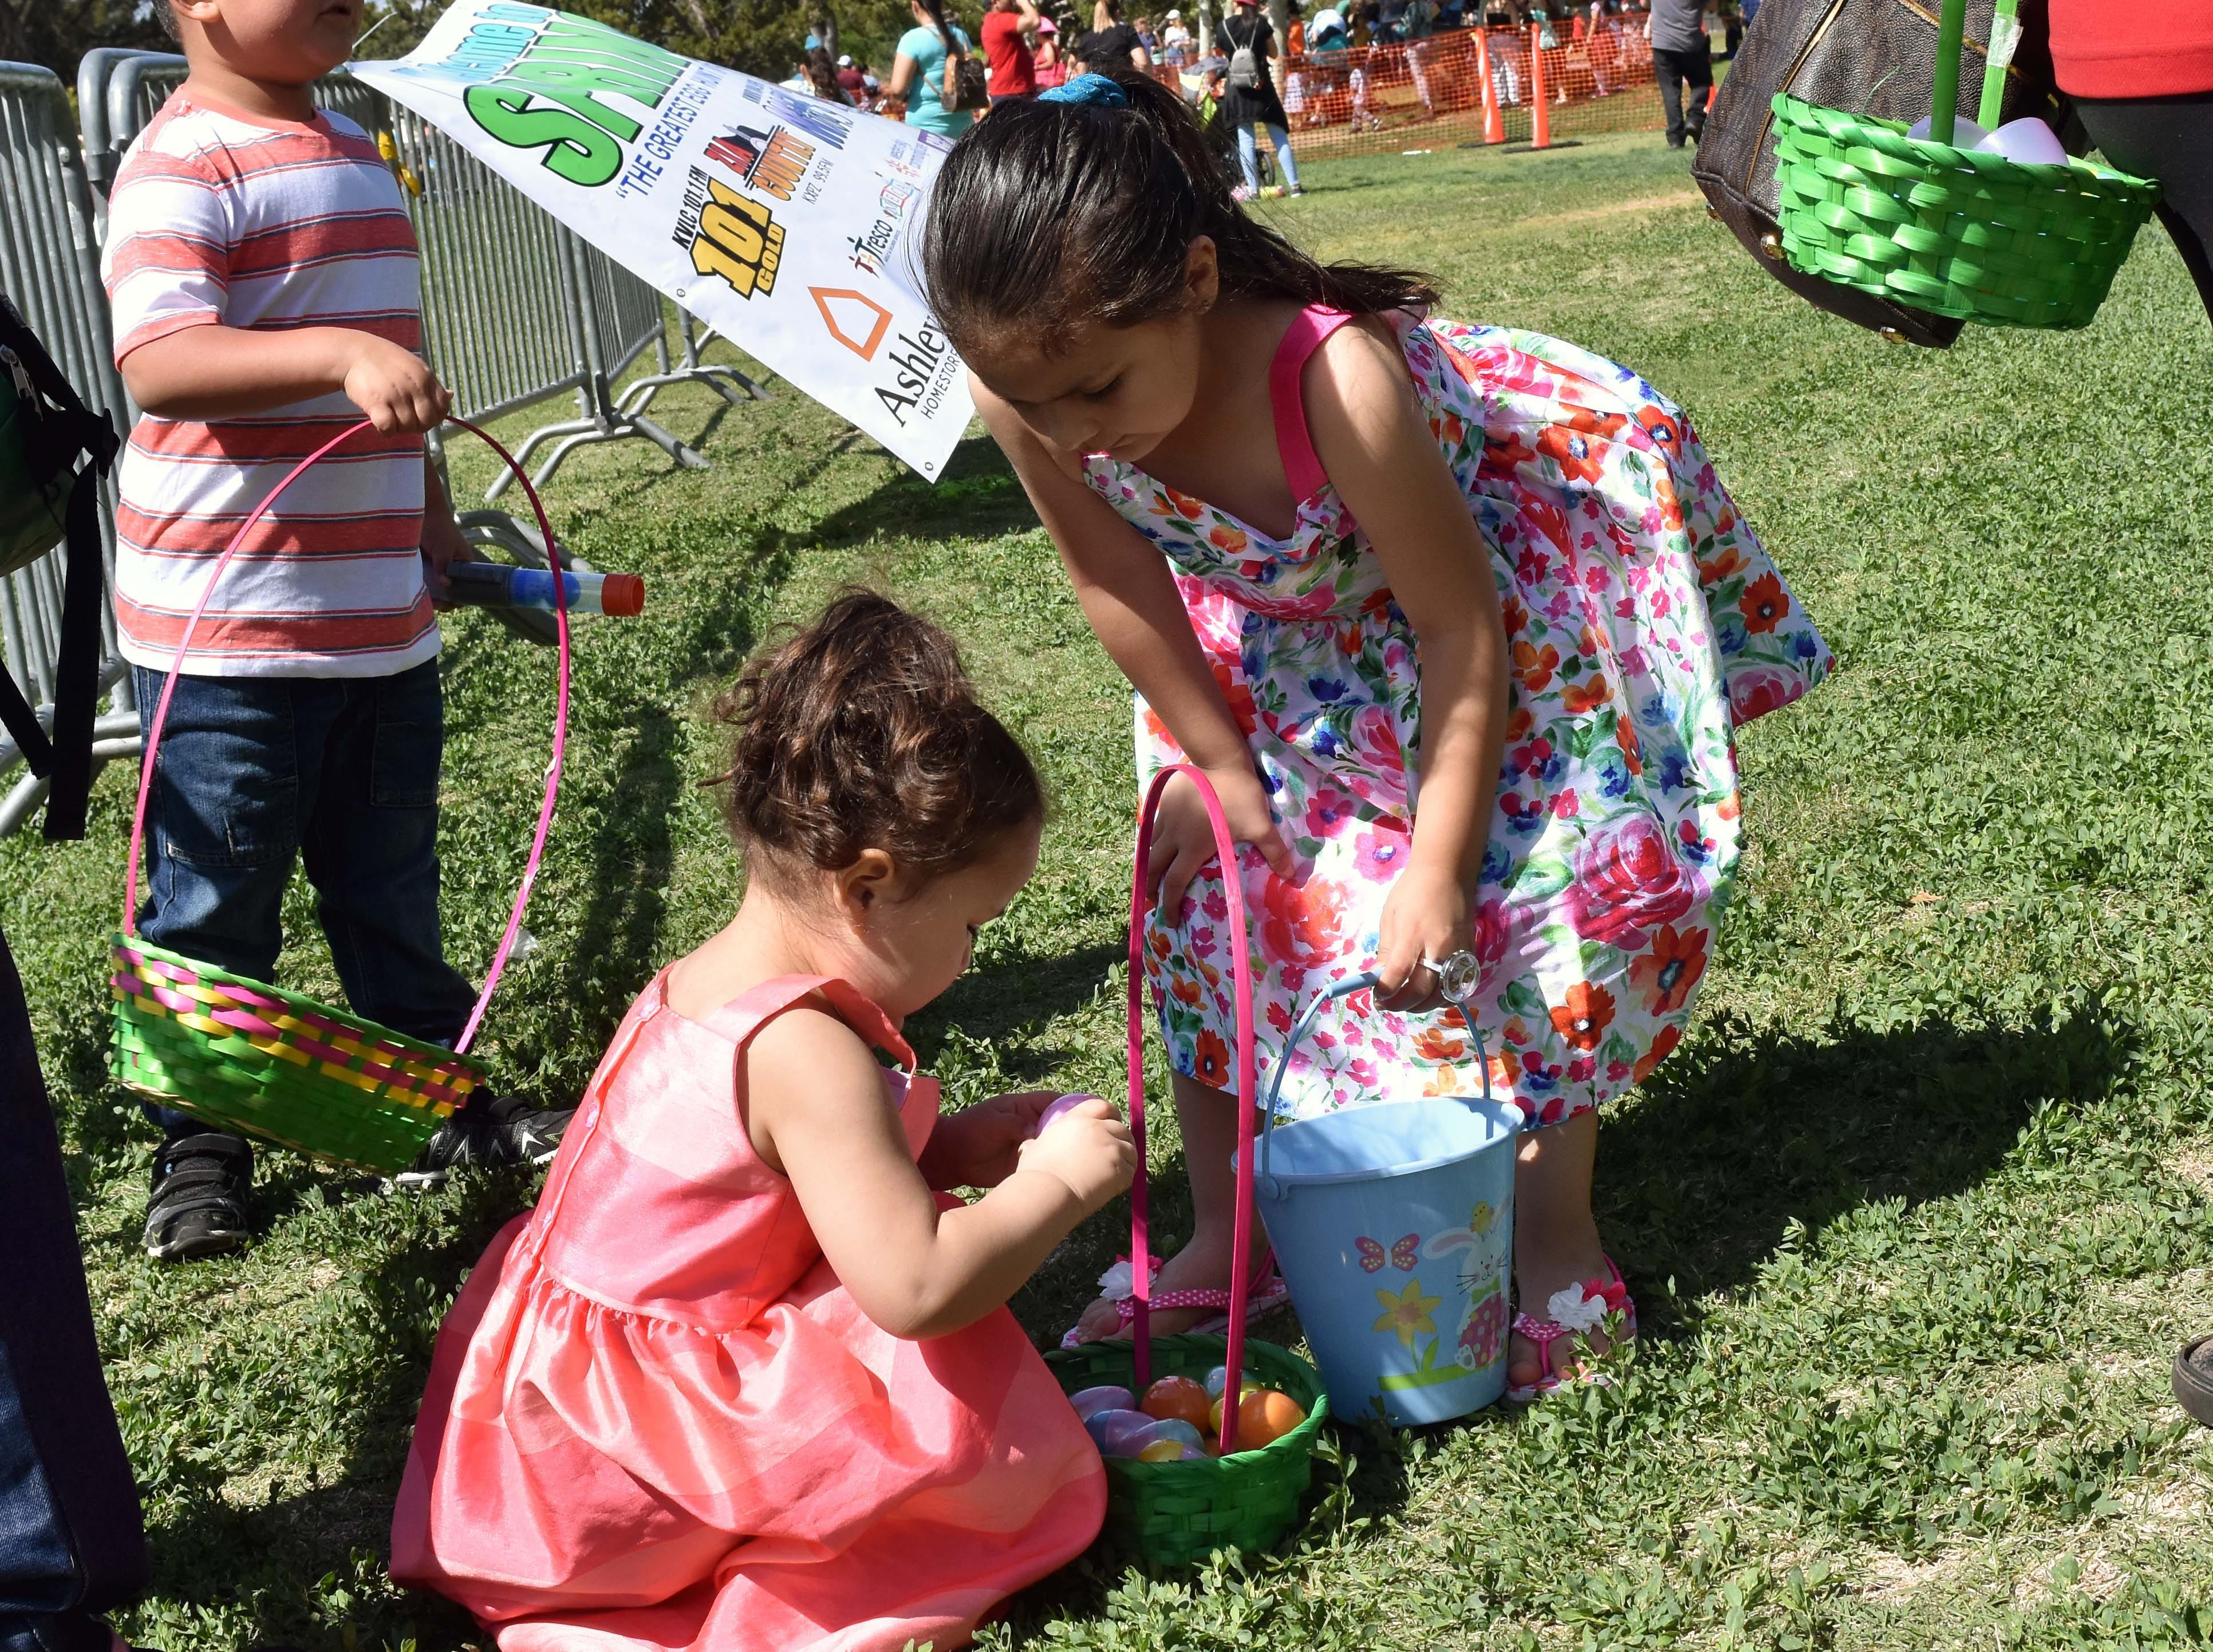 Amalia Gonzalez, left, and her sister Frankie Gonzalez check their baskets out after the SpringFest egg hunt at Young Park on Saturday, April 20, 2019.